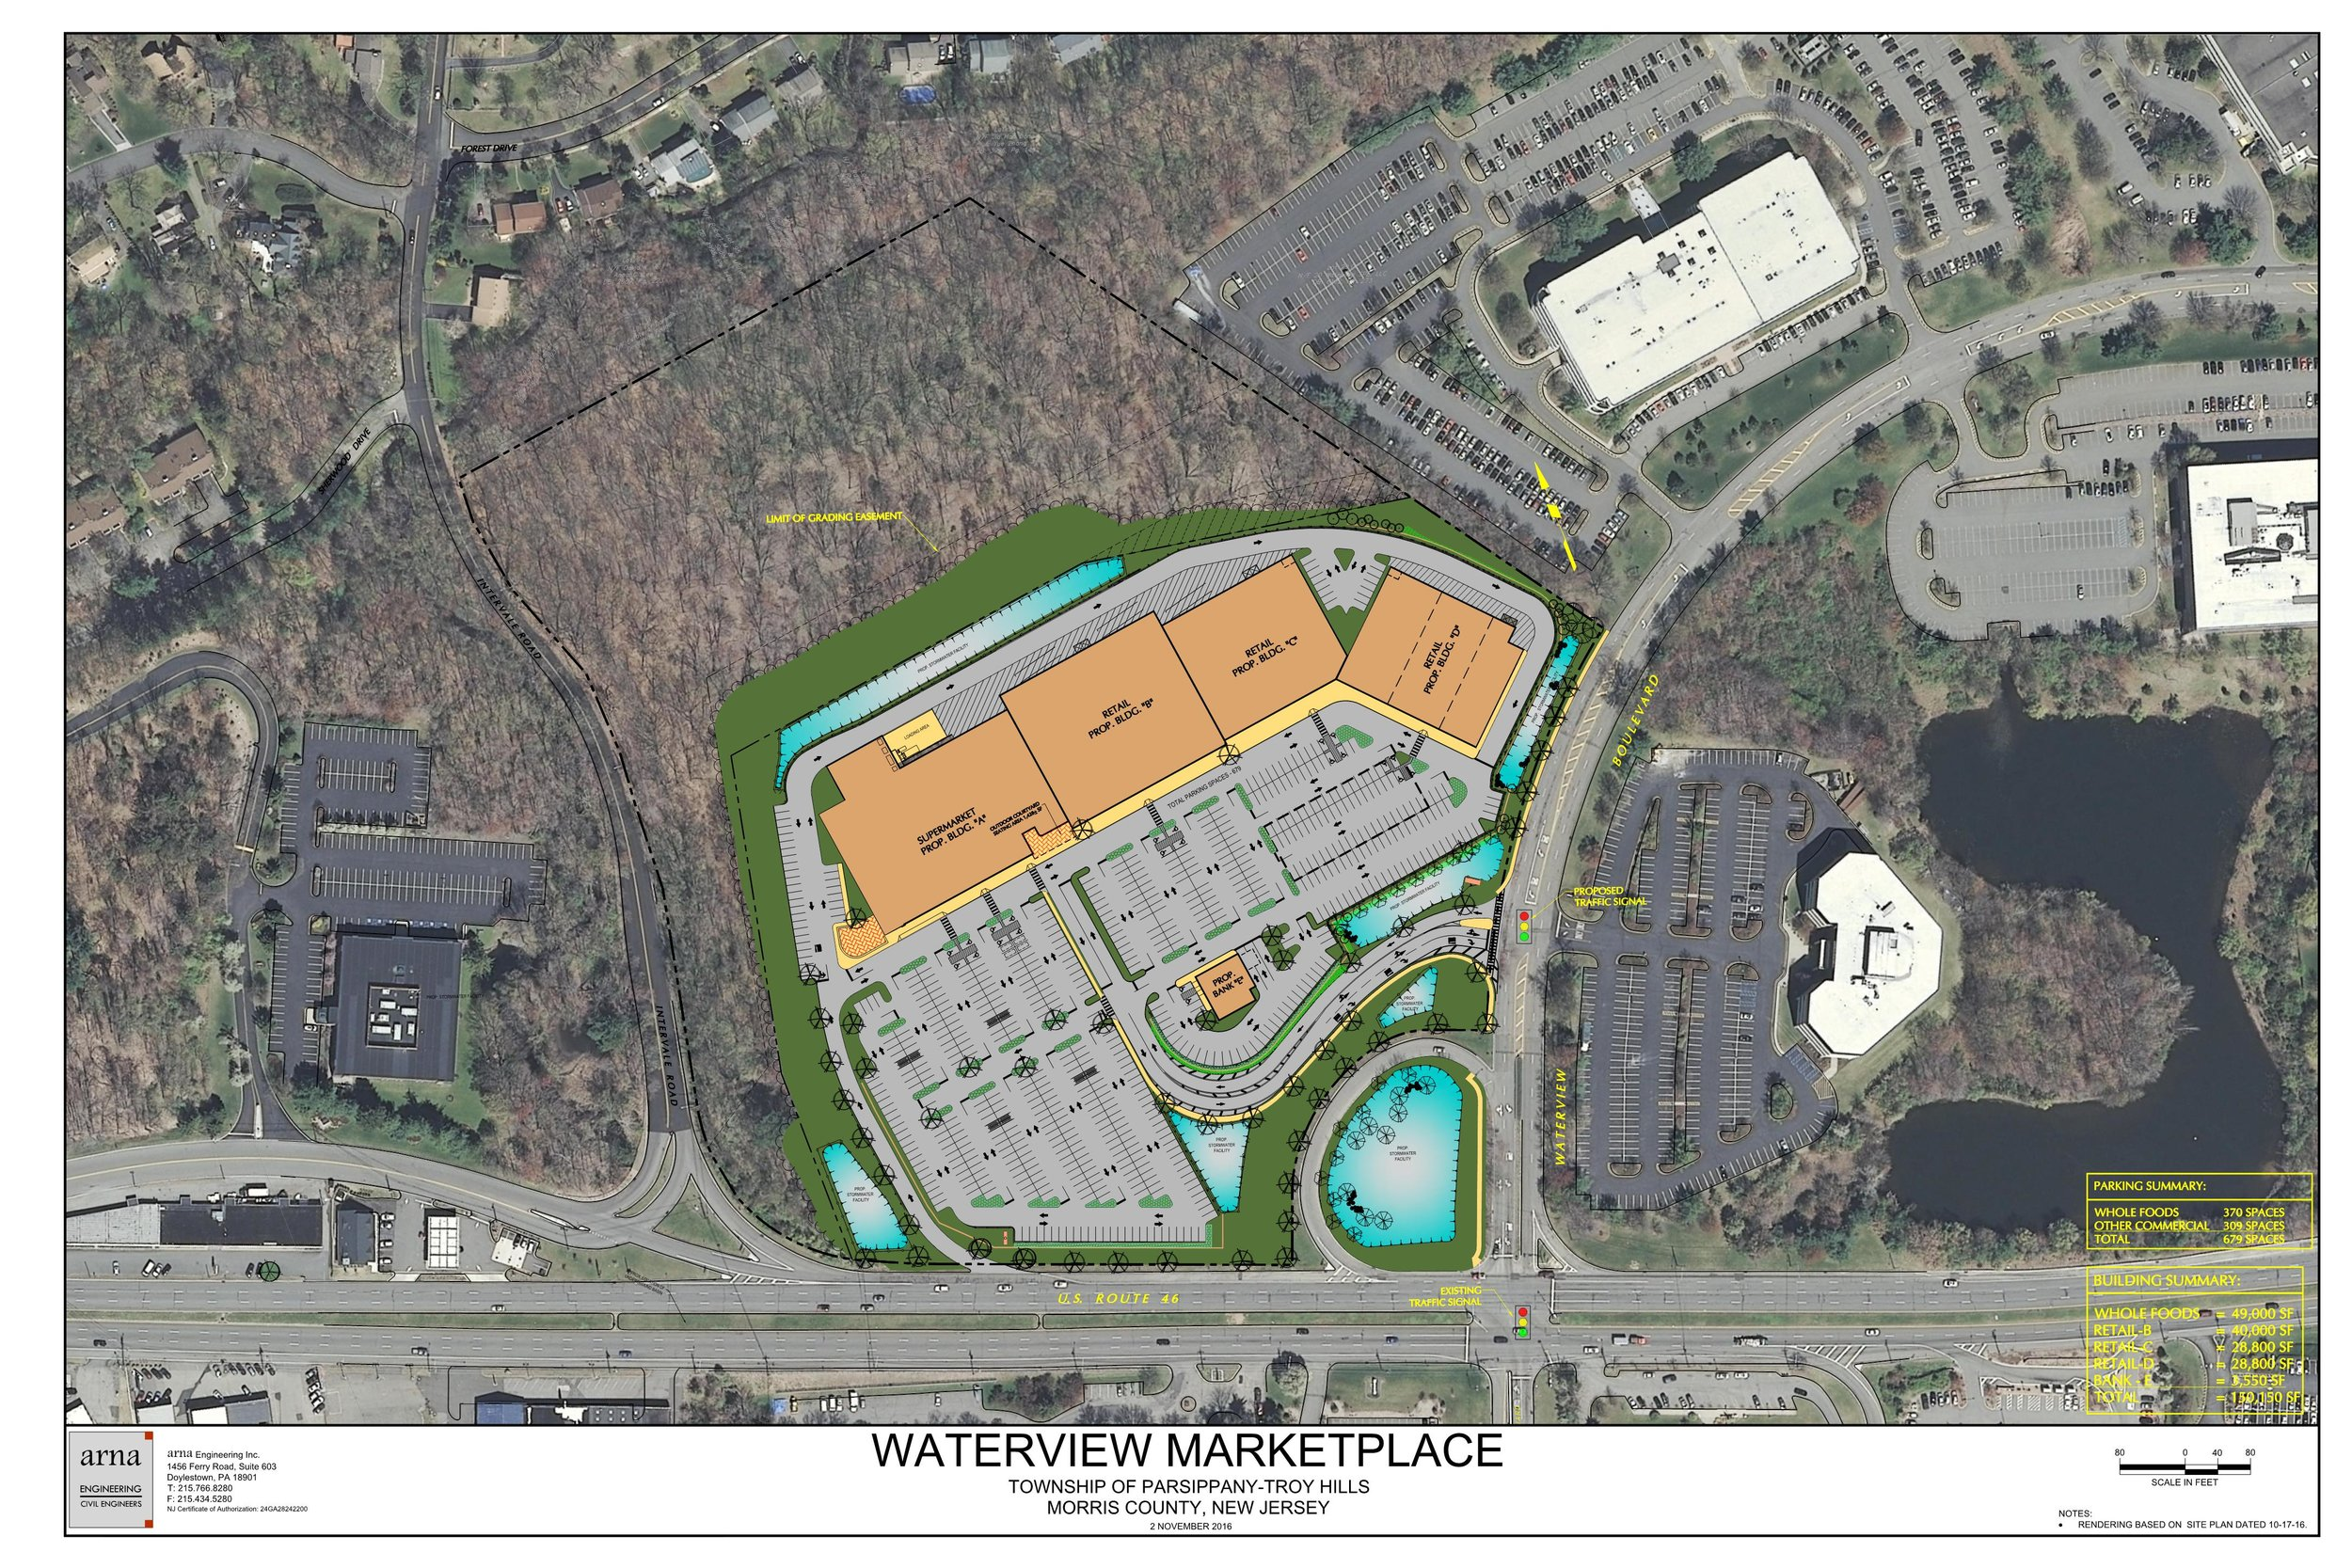 Waterview Marketplace, Parsippany, New Jersey